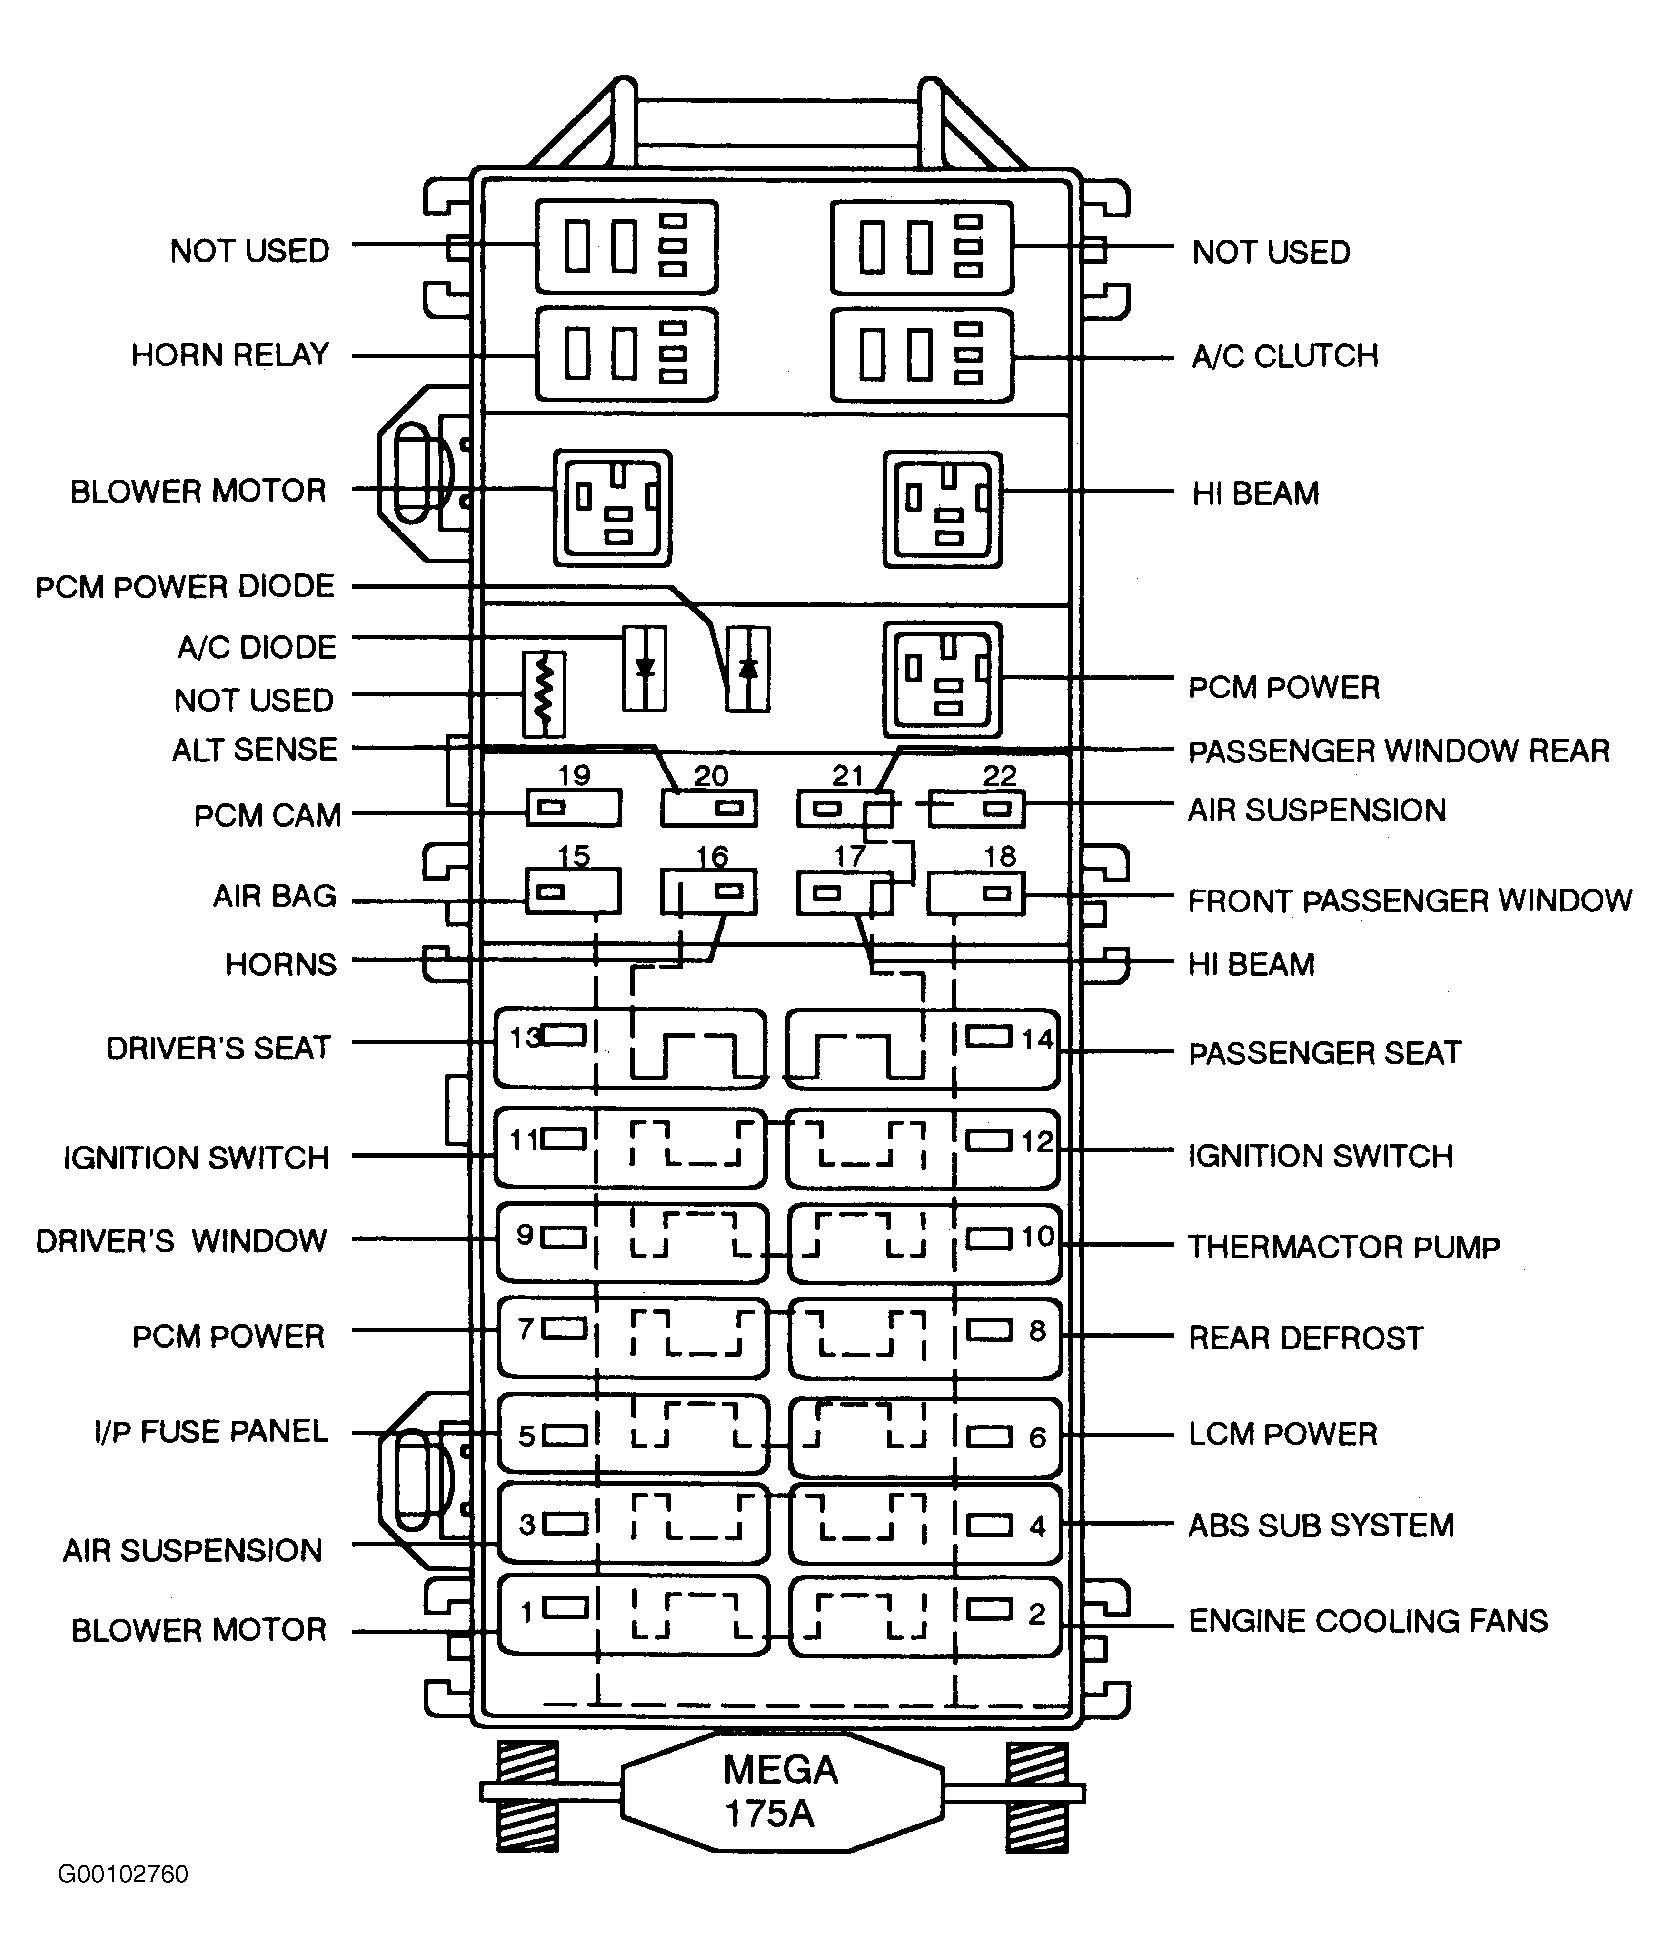 92 lincoln continental fuse diagram | better wiring ... 1995 lincoln continental fuse box diagram #6